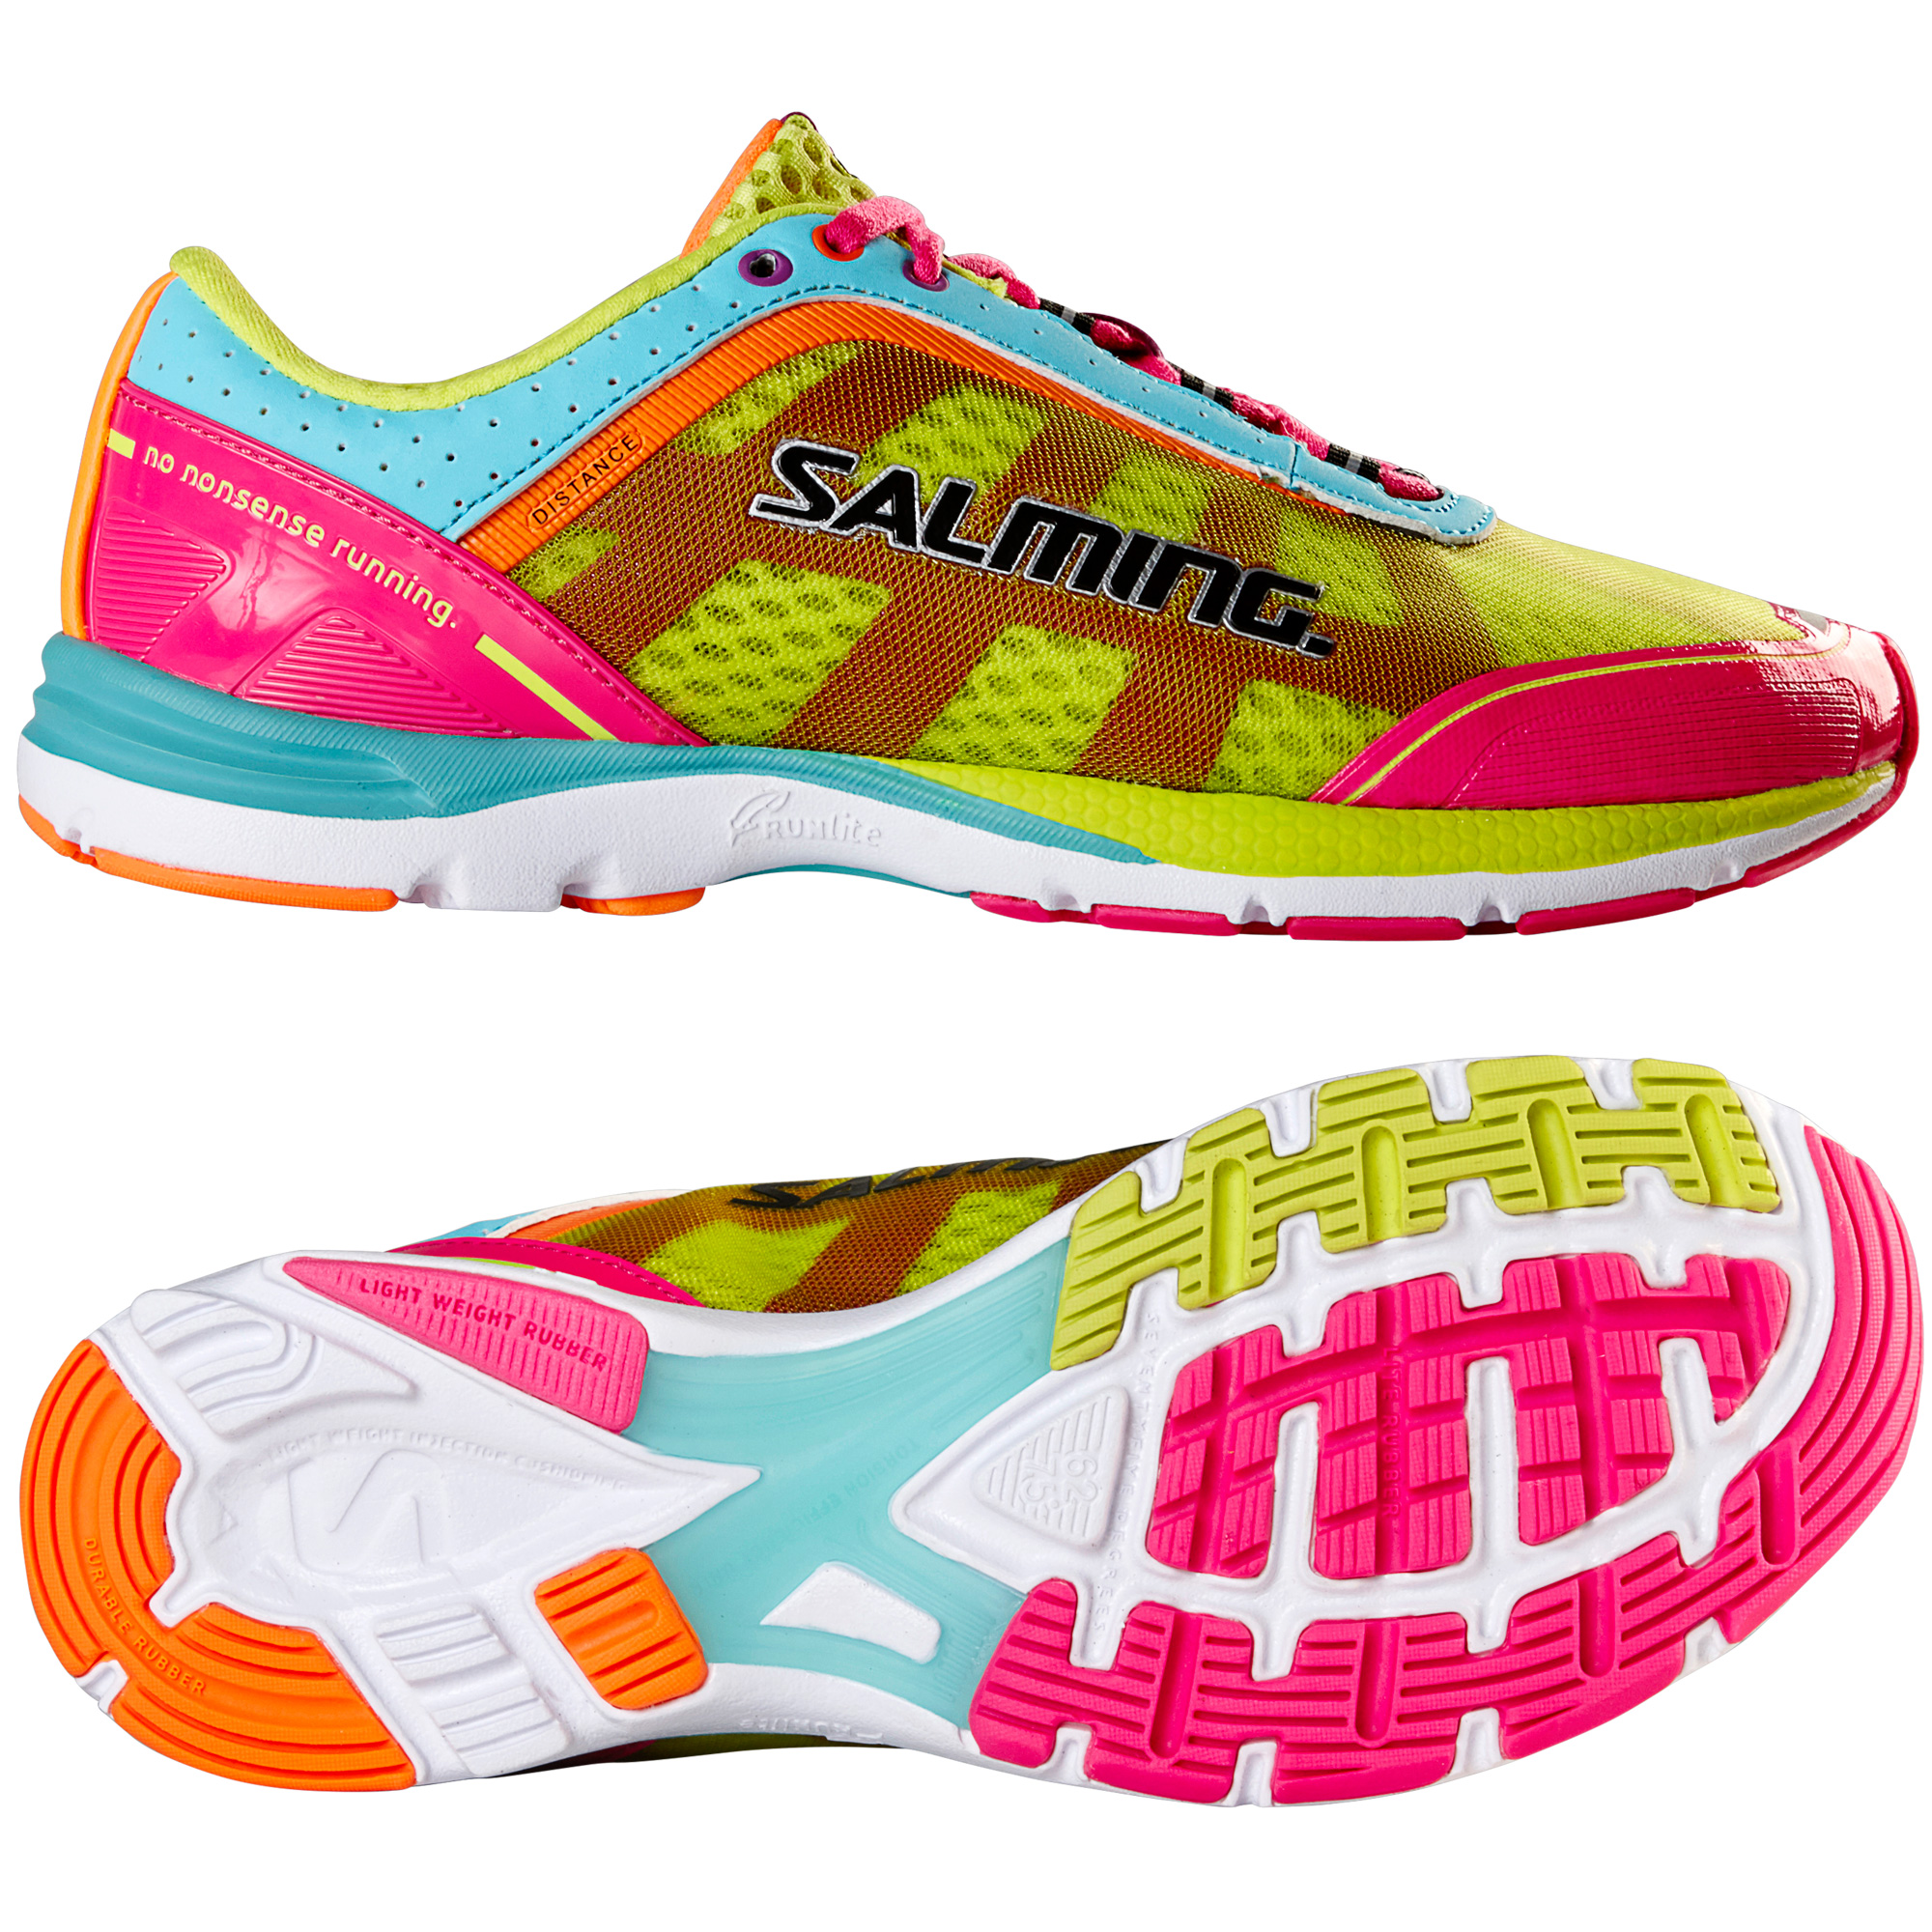 Salming Distance 3 Ladies Running Shoes - 4.5 UK